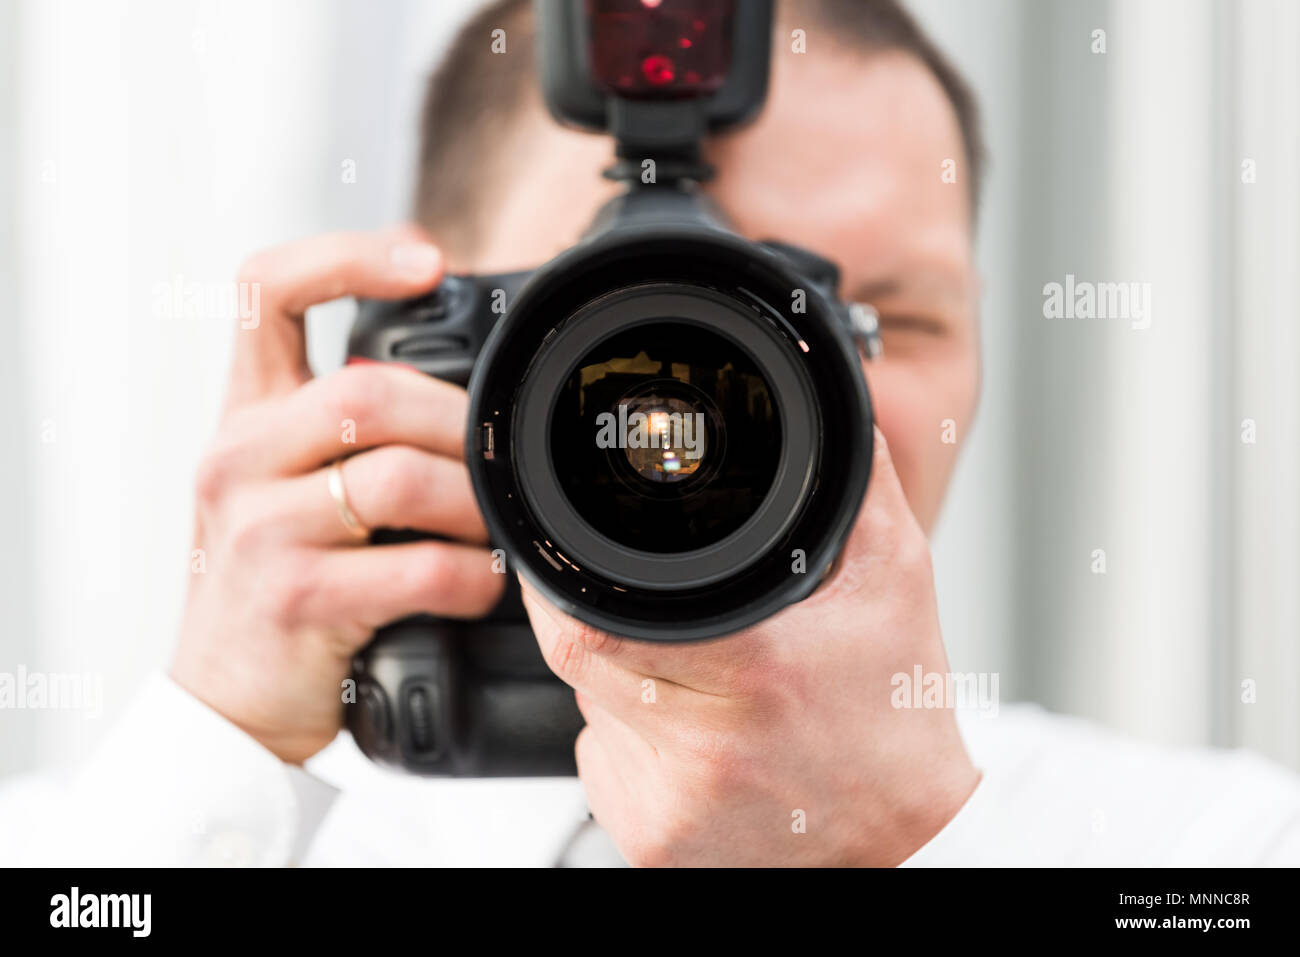 Photographer For Hire Stock Photos & Photographer For Hire Stock